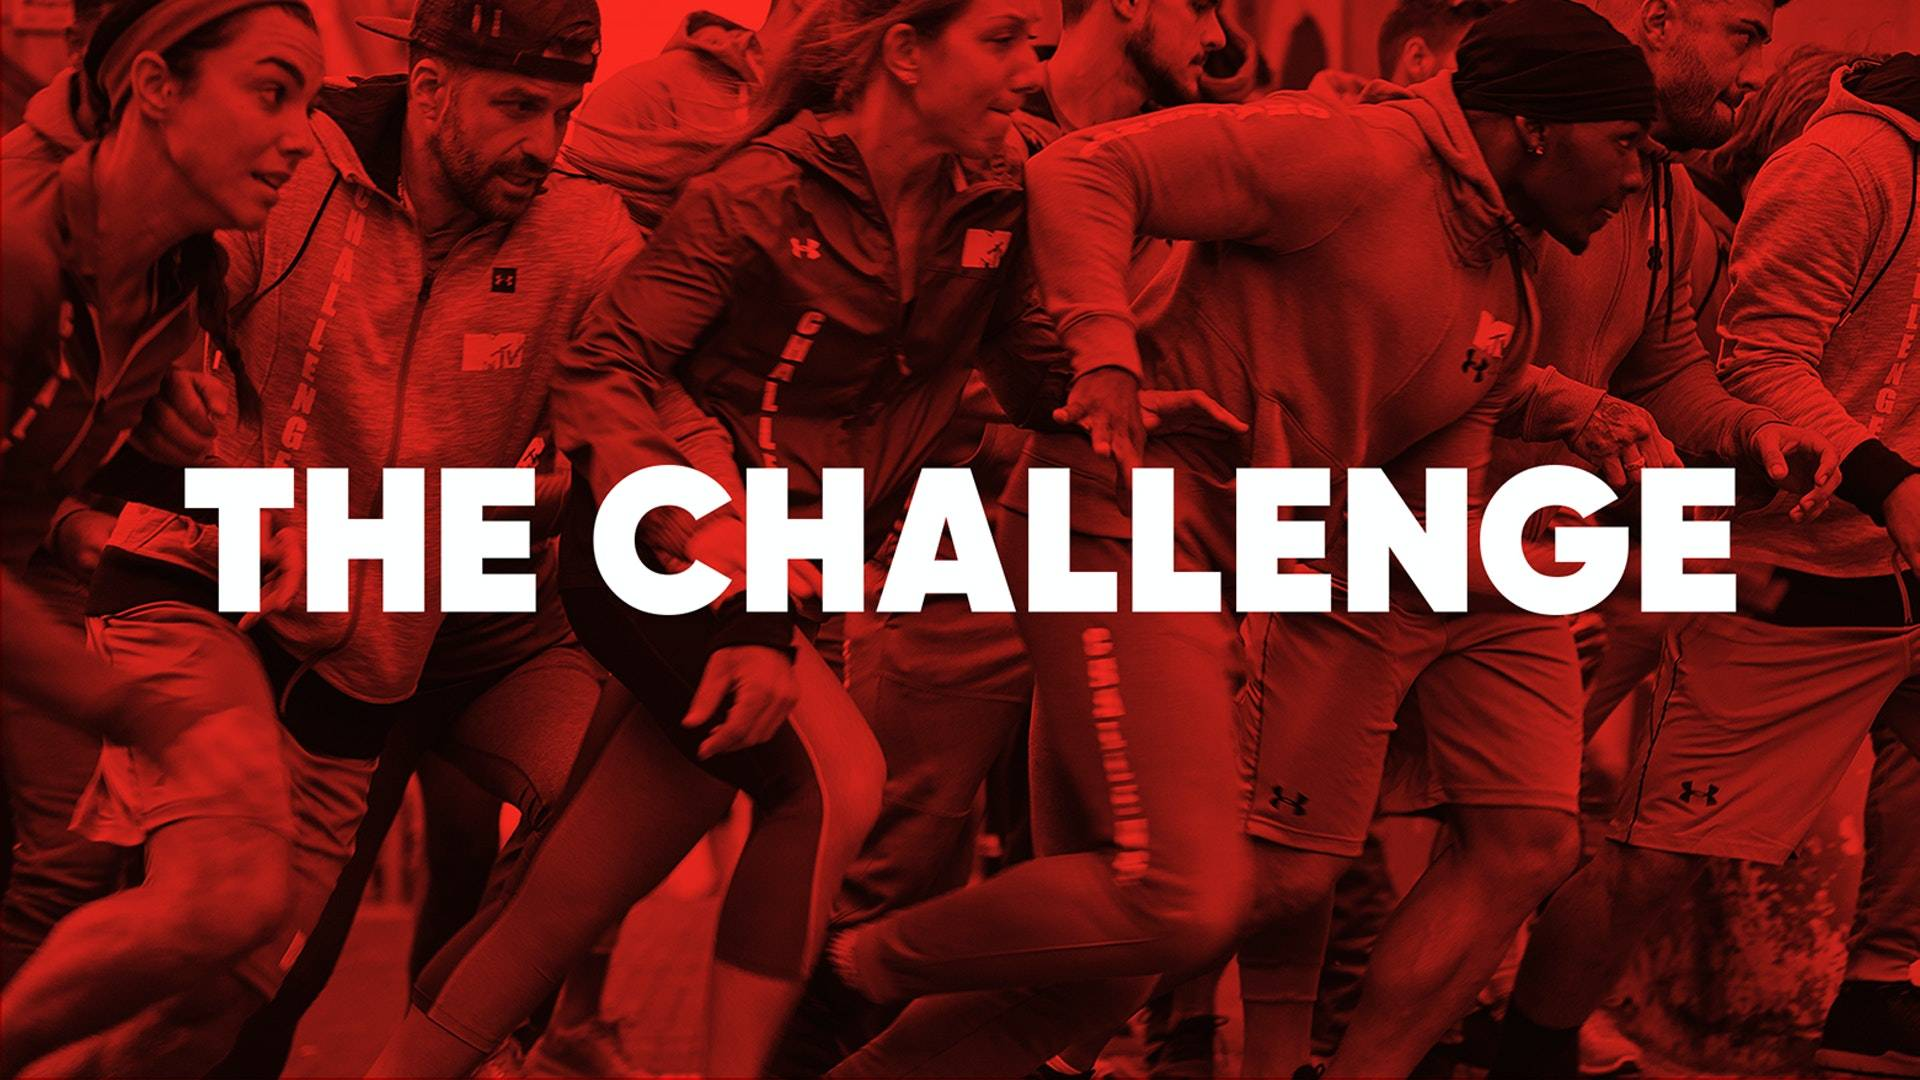 Watch MTV's The Challenge Channel On Pluto TV